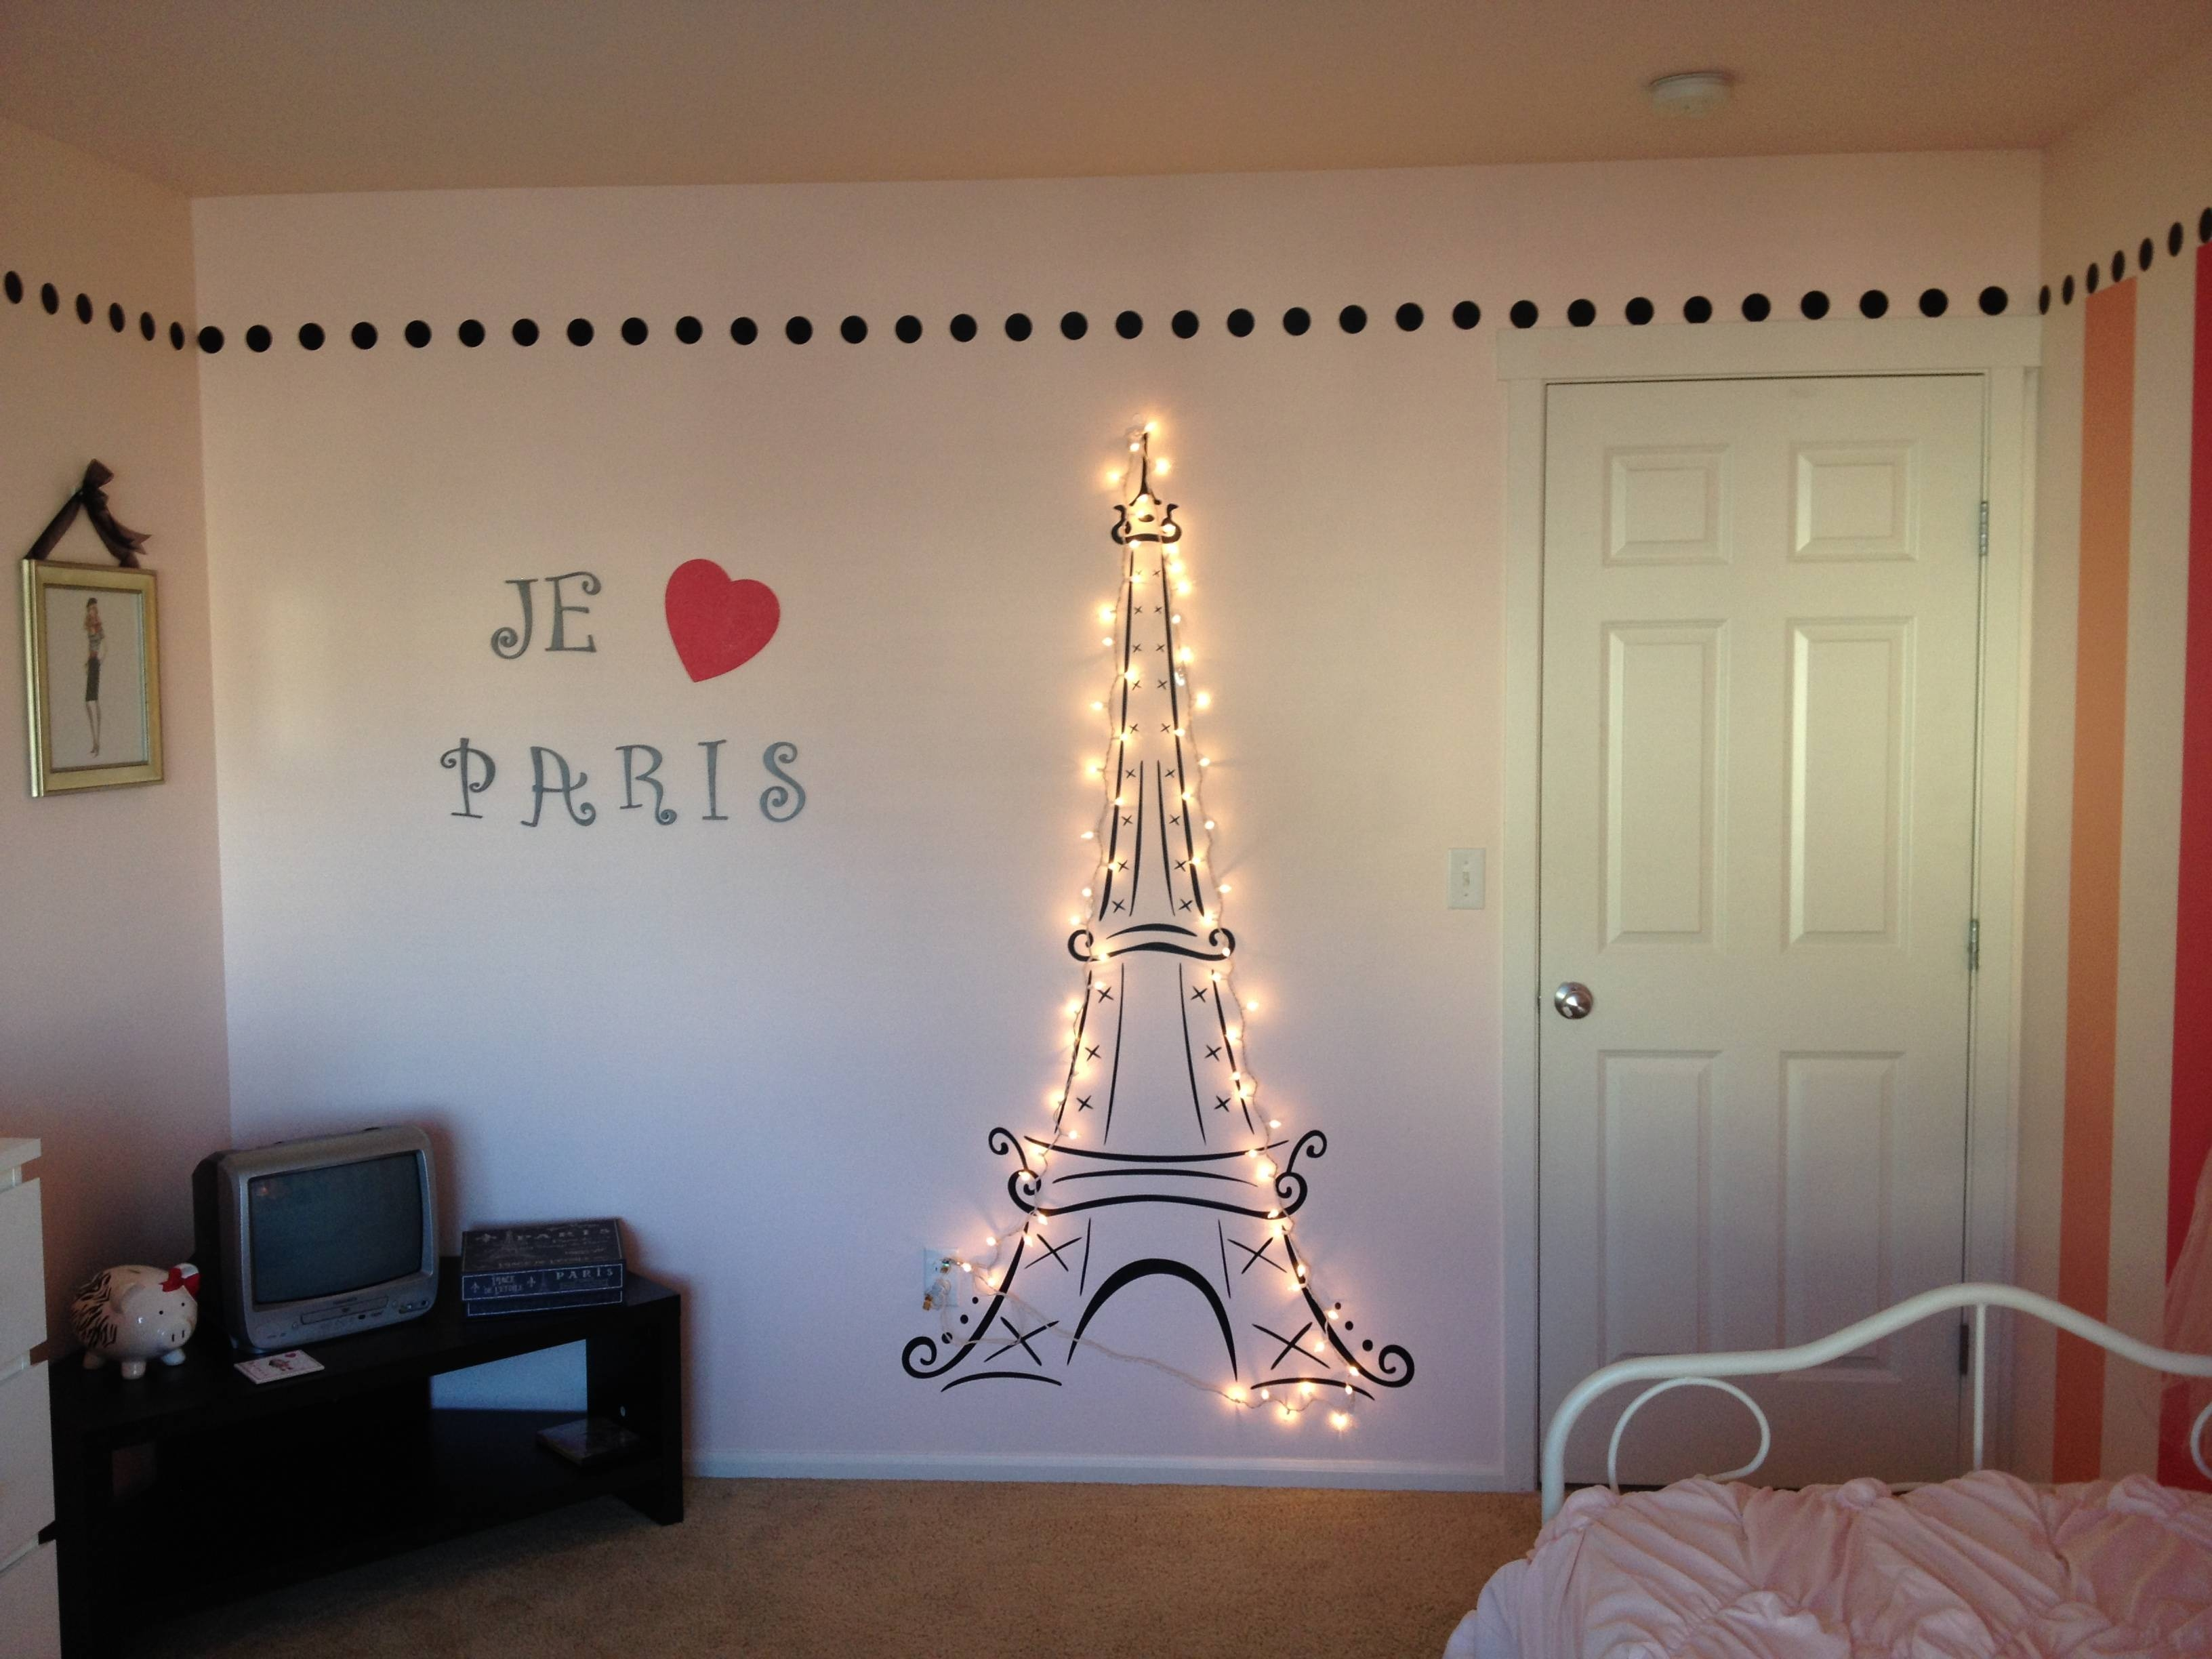 Lit Eiffel Tower For My Daughter's Paris Themed Room! | Paris Intended For Most Recent Paris Theme Nursery Wall Art (View 20 of 30)